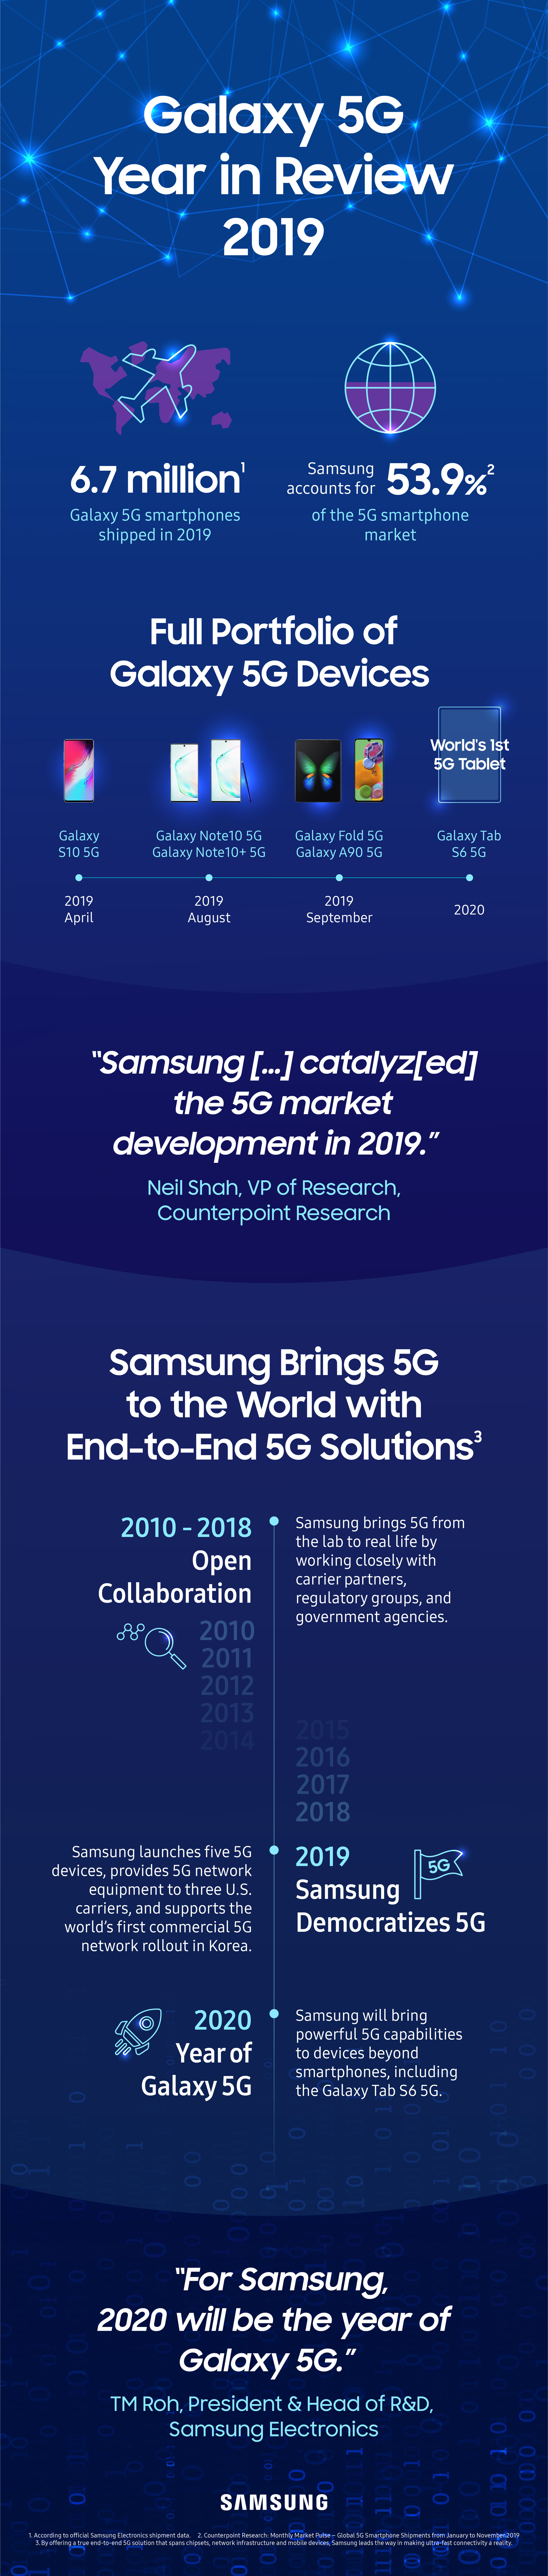 Galaxy 5G Year in Review2019